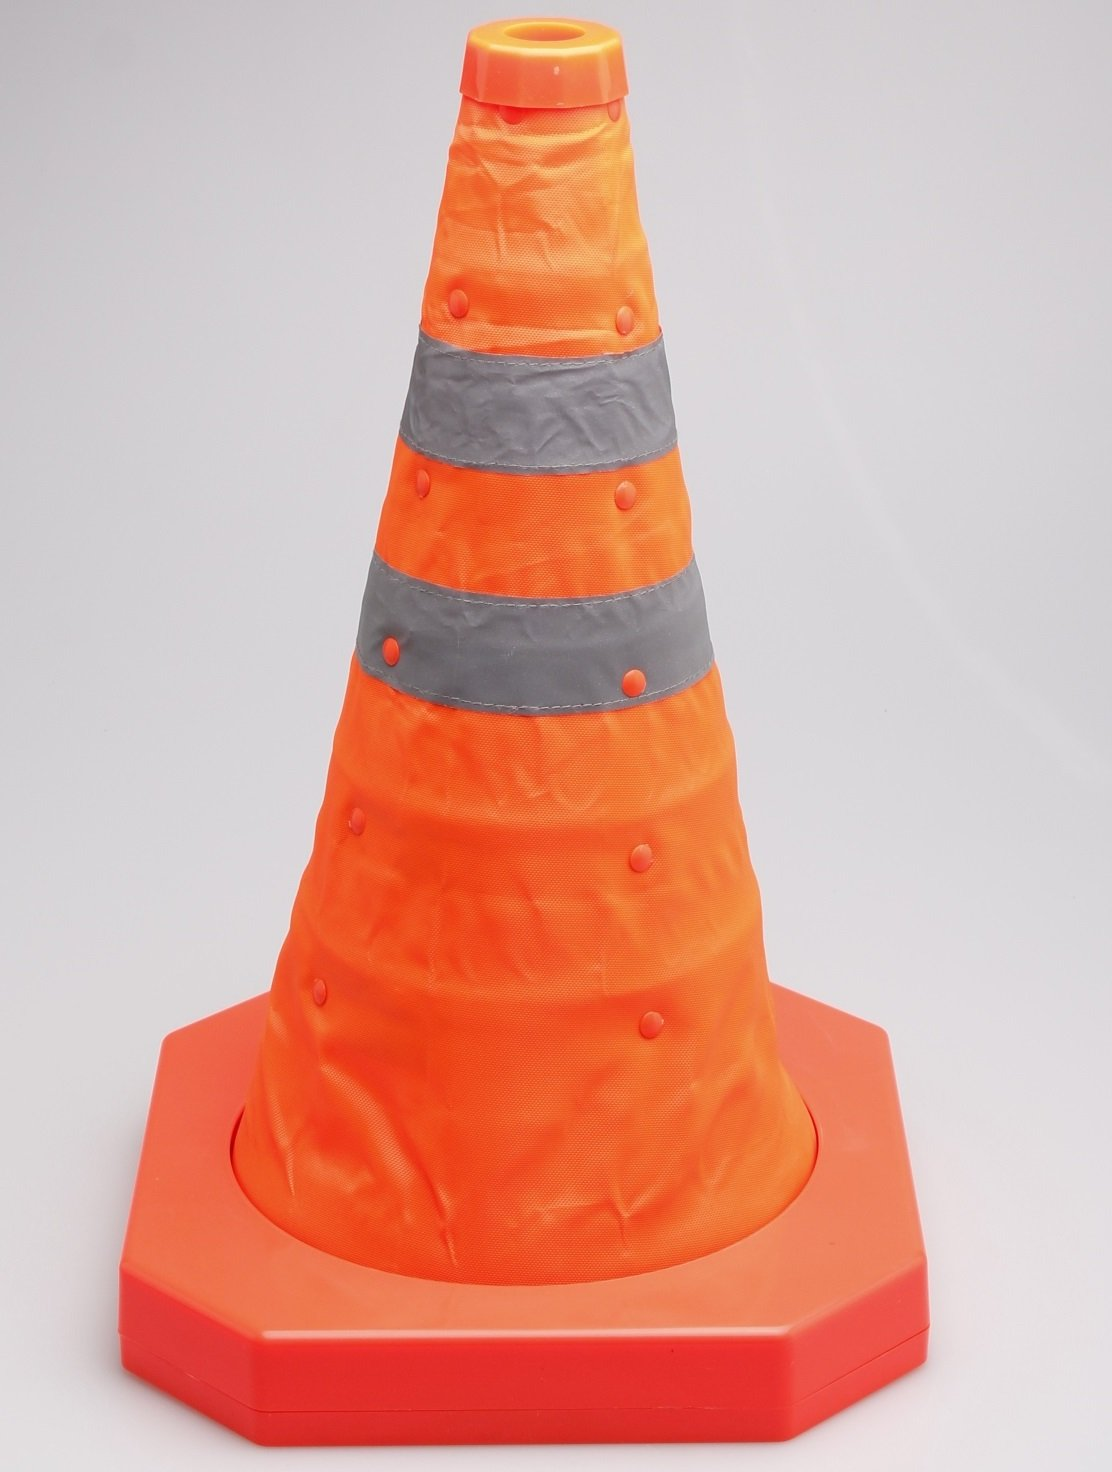 Cartman Collapsible Traffic Cone 15,5 Inches, Multi Purpose Pop up Reflective Safety Cone (2pk)